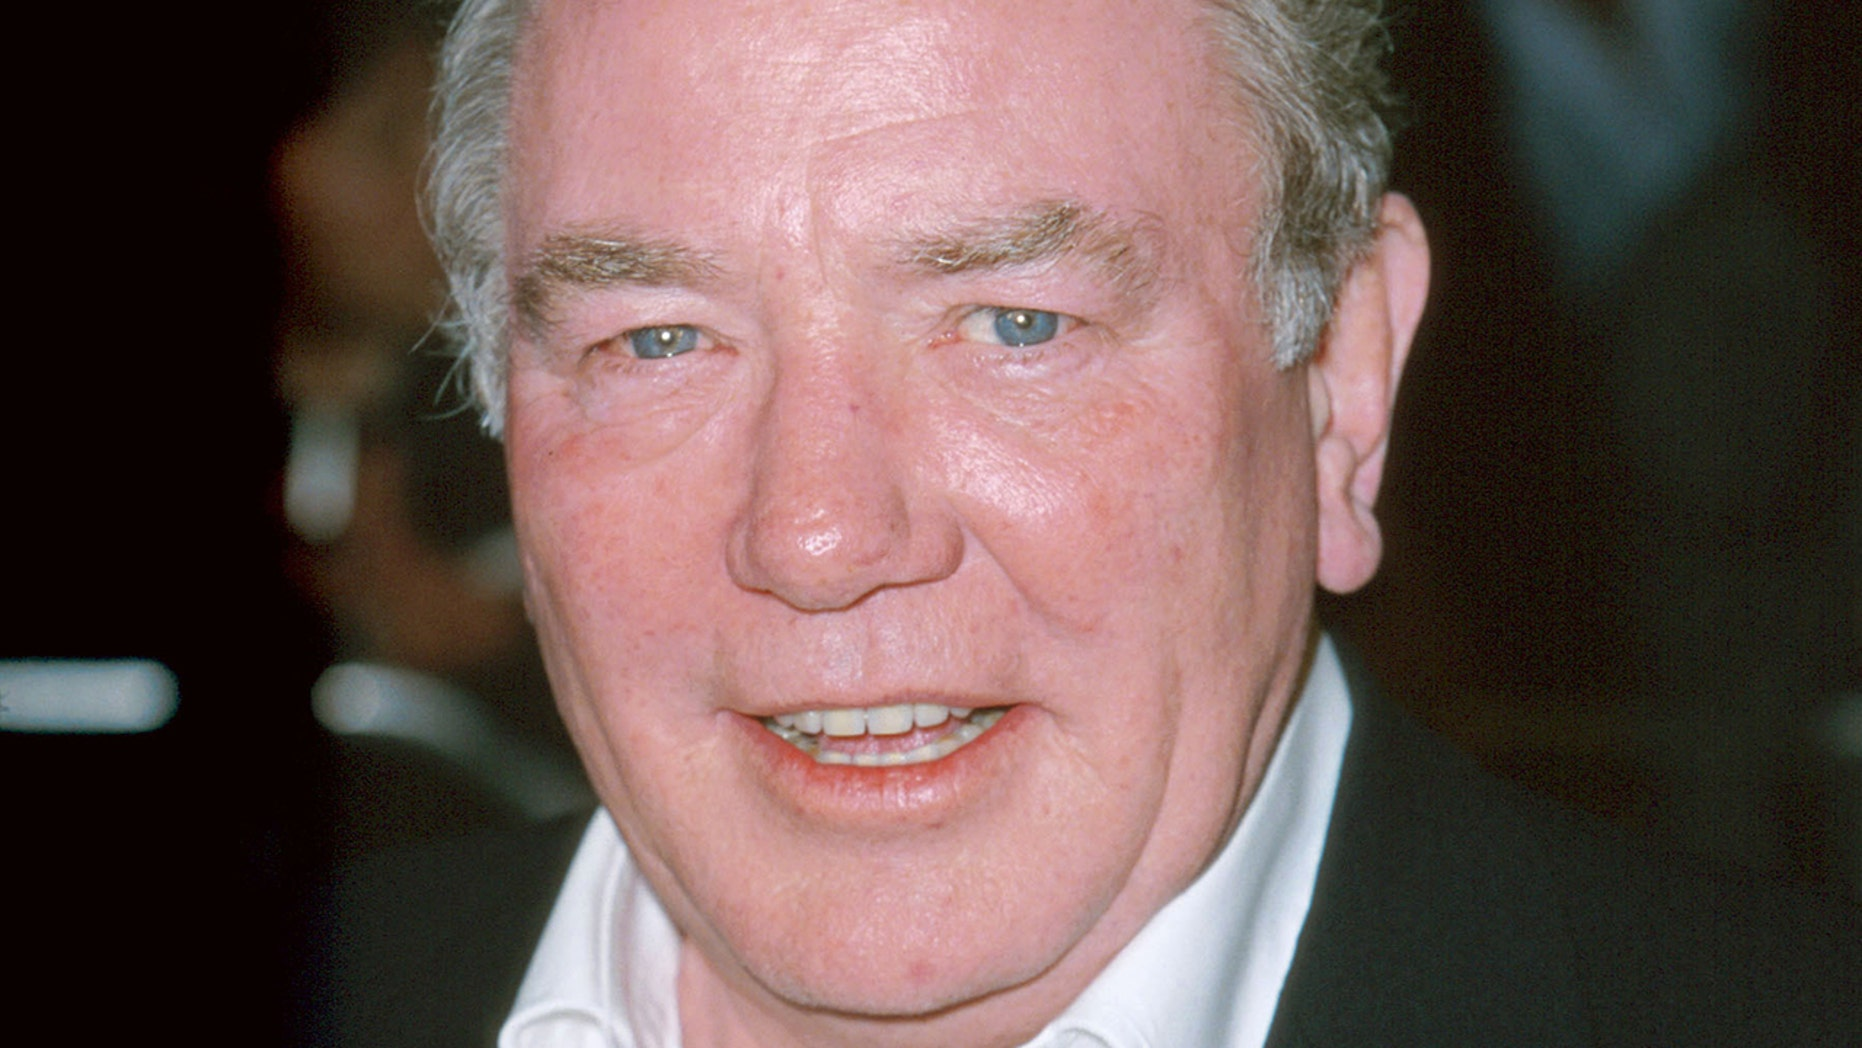 Actor Albert Finney has died aged 82